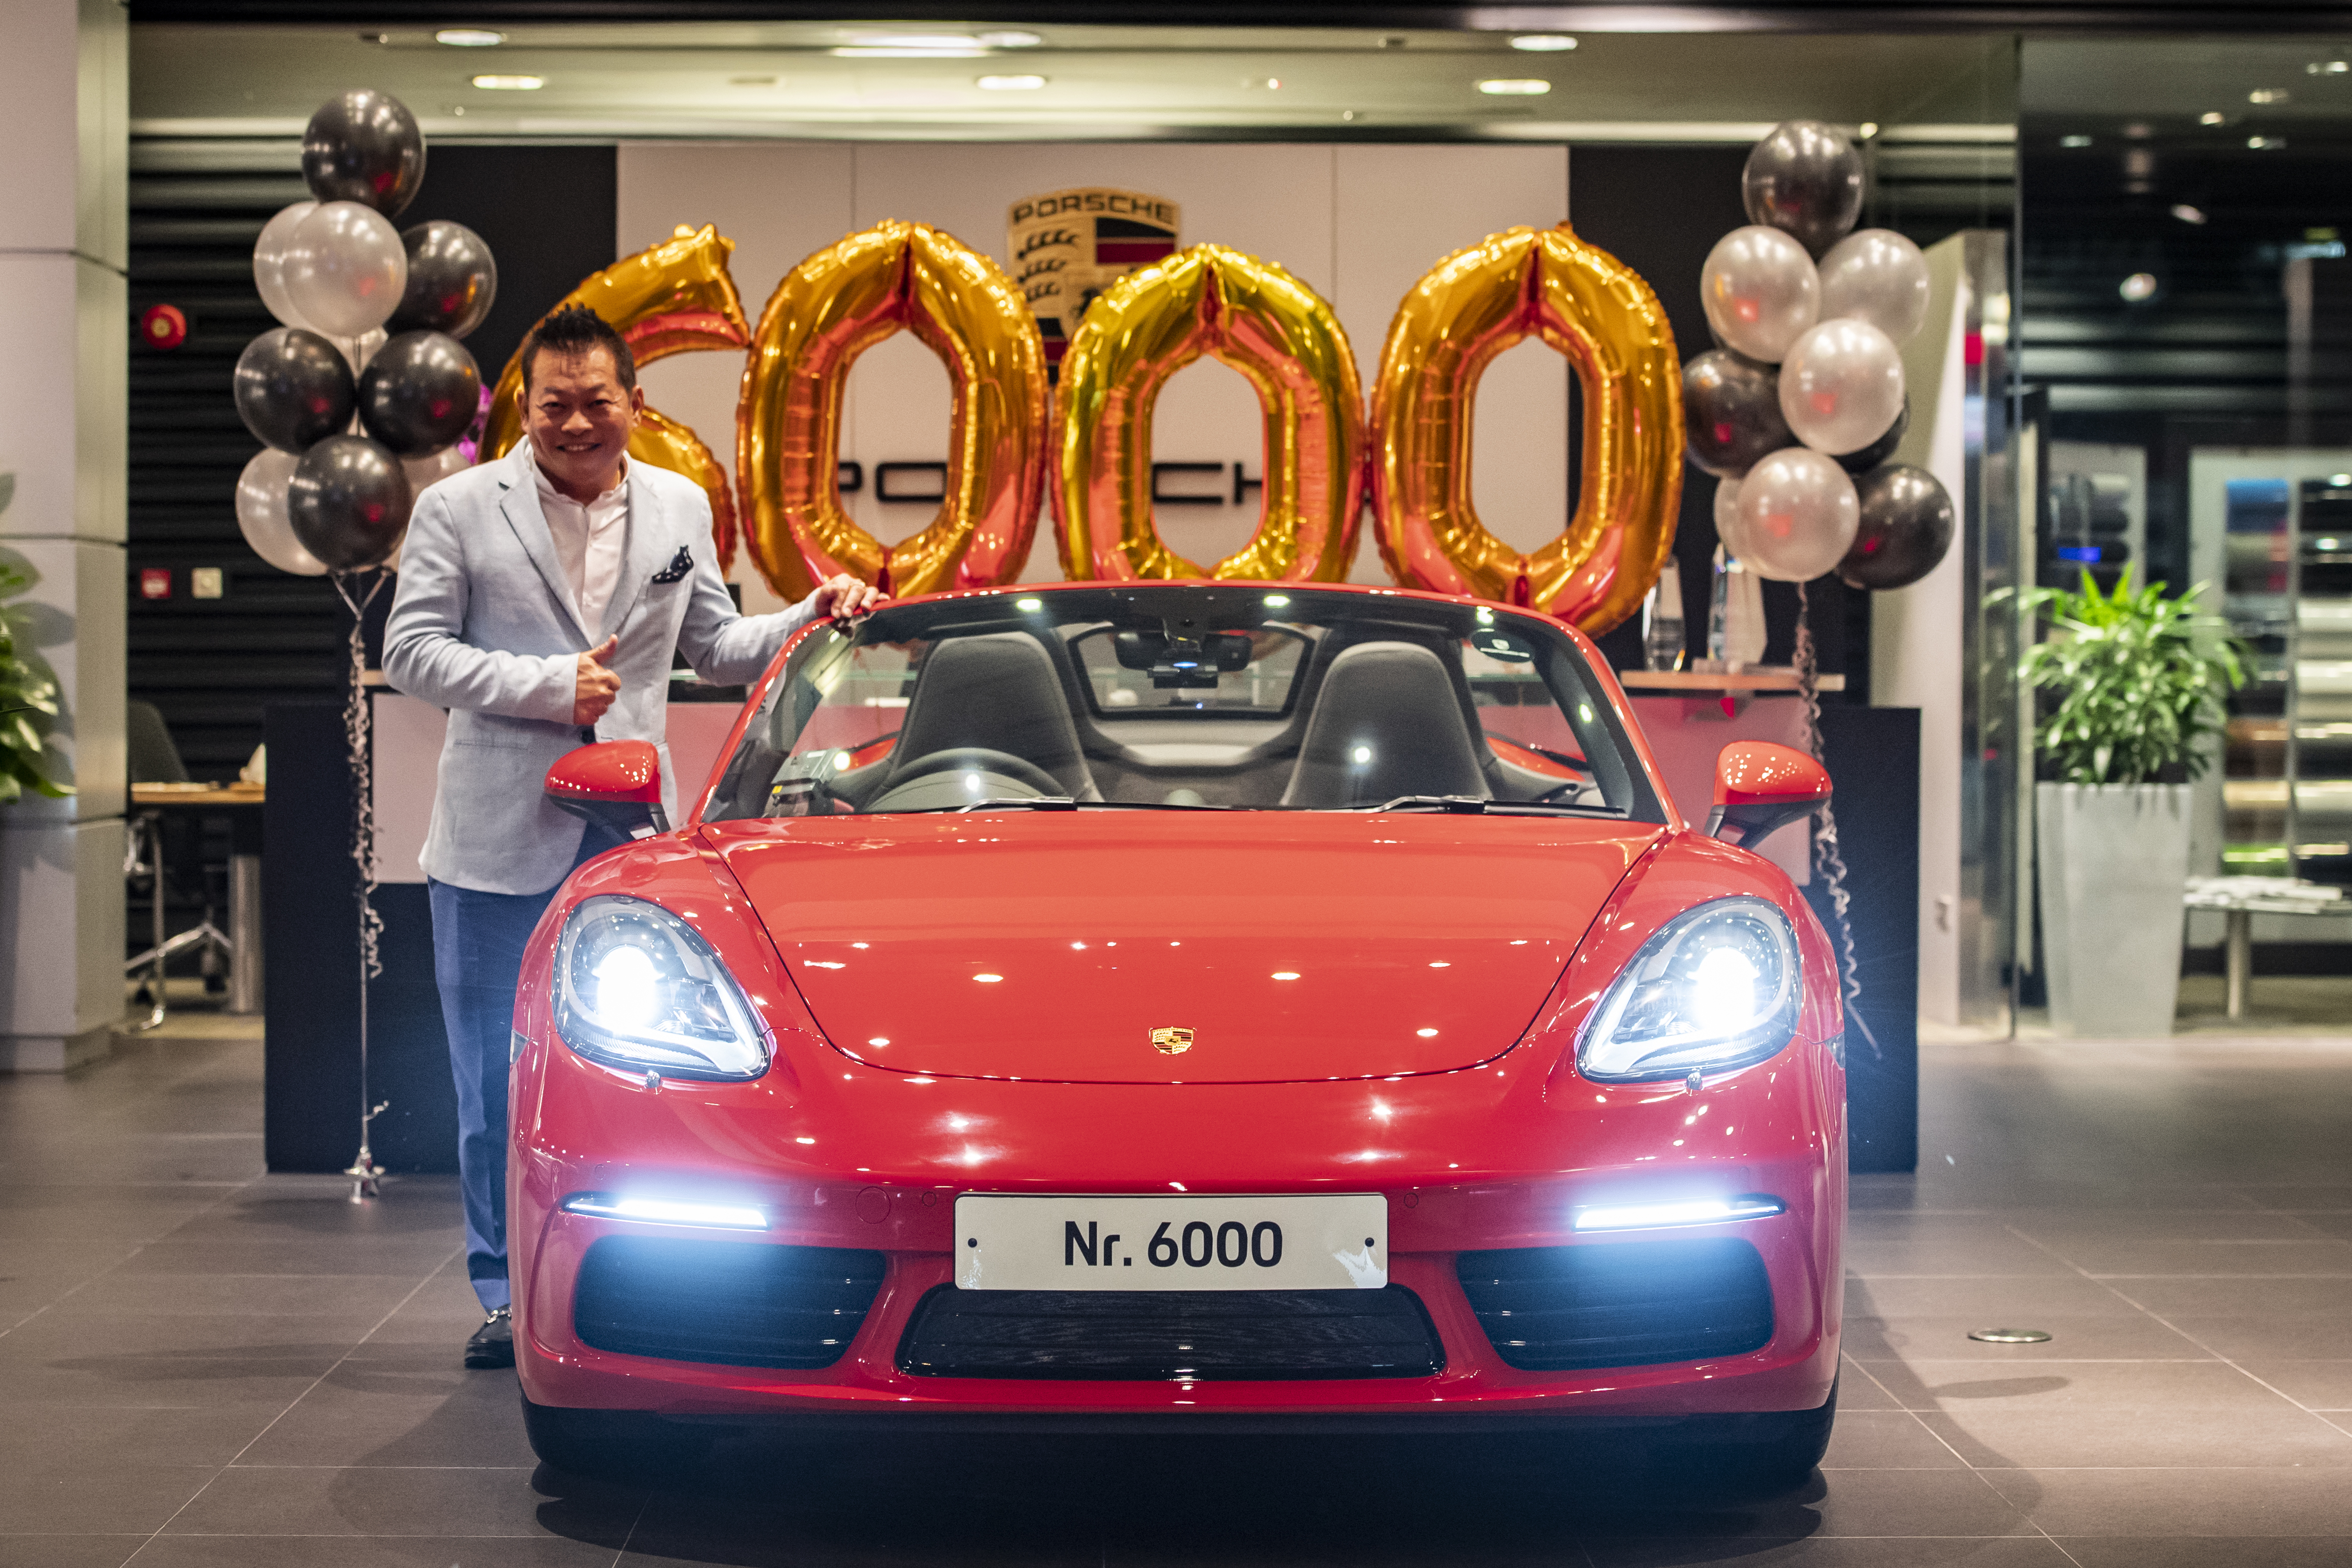 Mr Joe Goh, the proud owner of the 6,000th Porsche car in Singapore